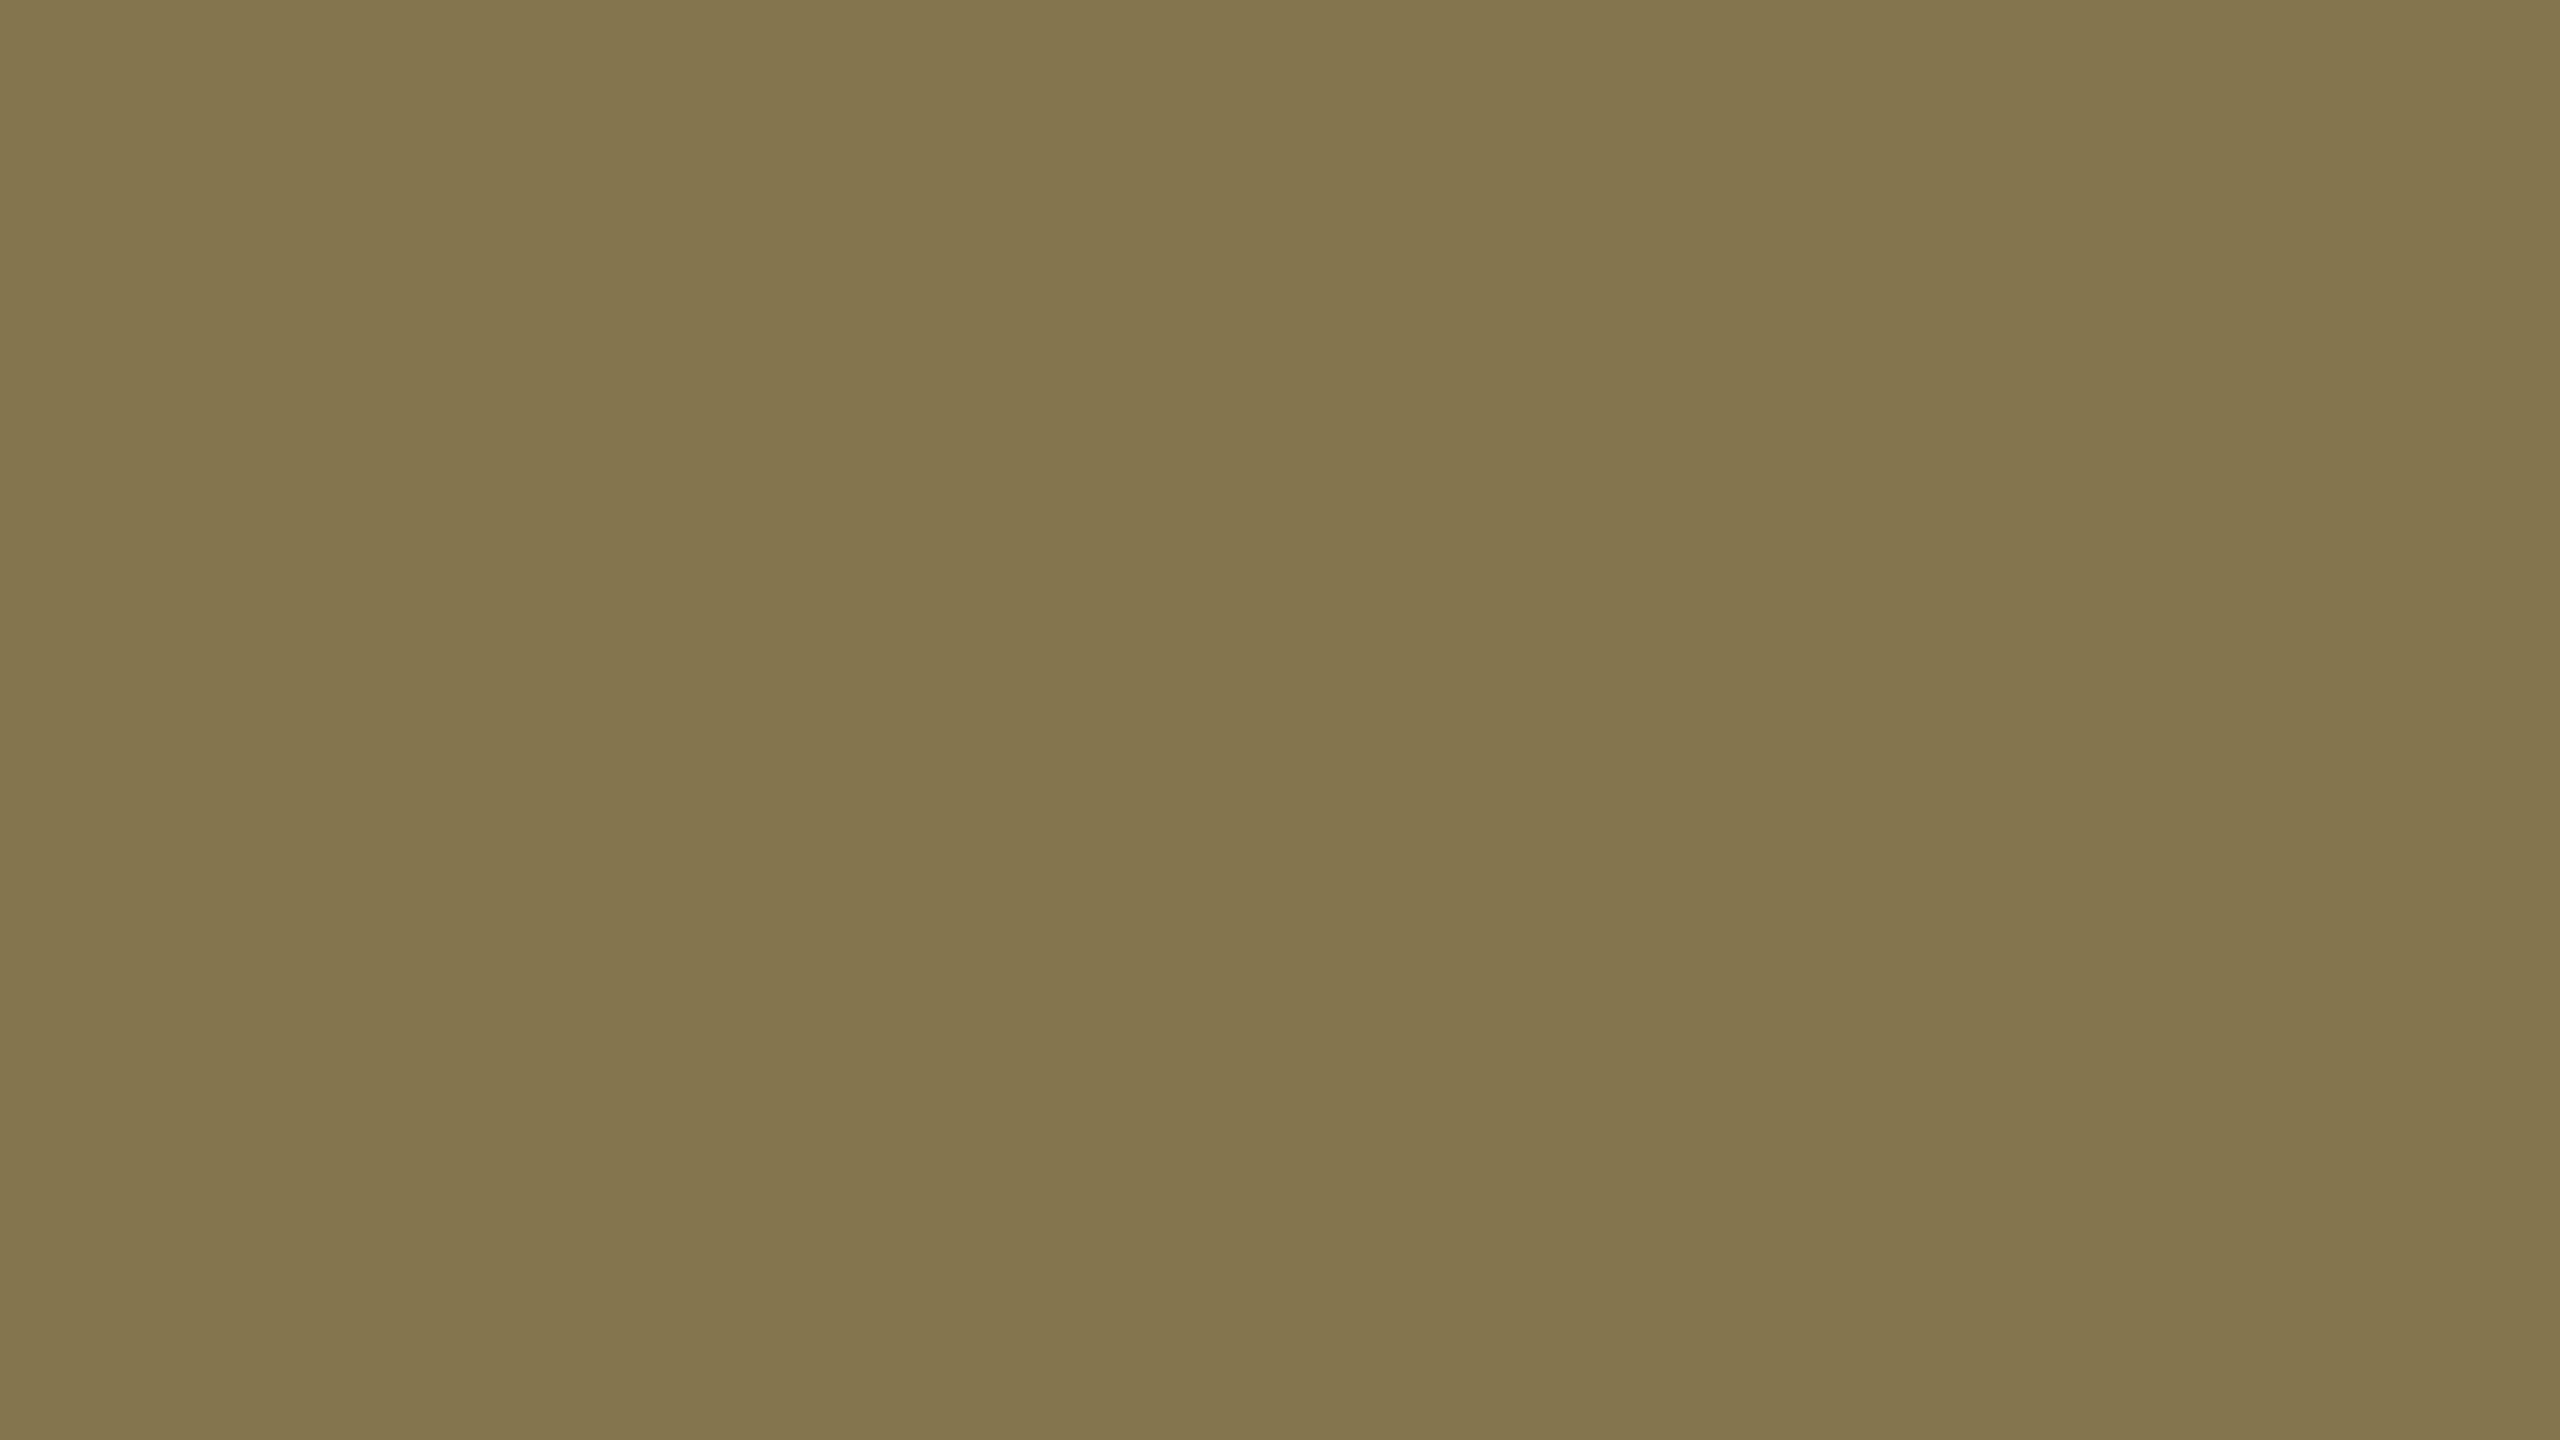 2560x1440 Gold Fusion Solid Color Background